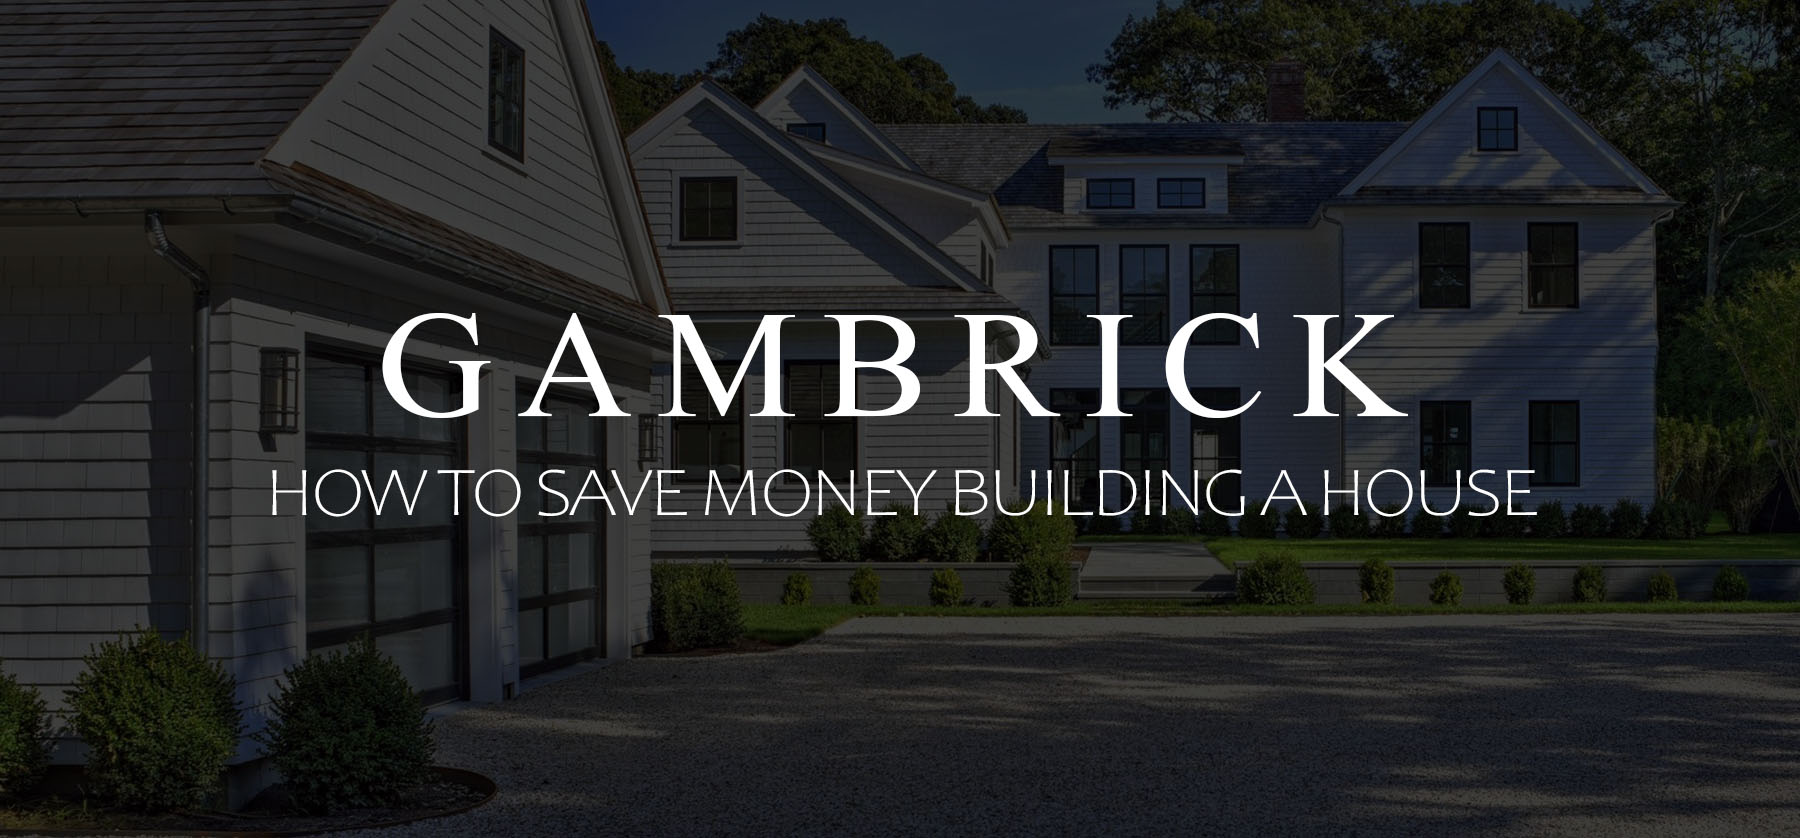 how to save money building a house banner picture